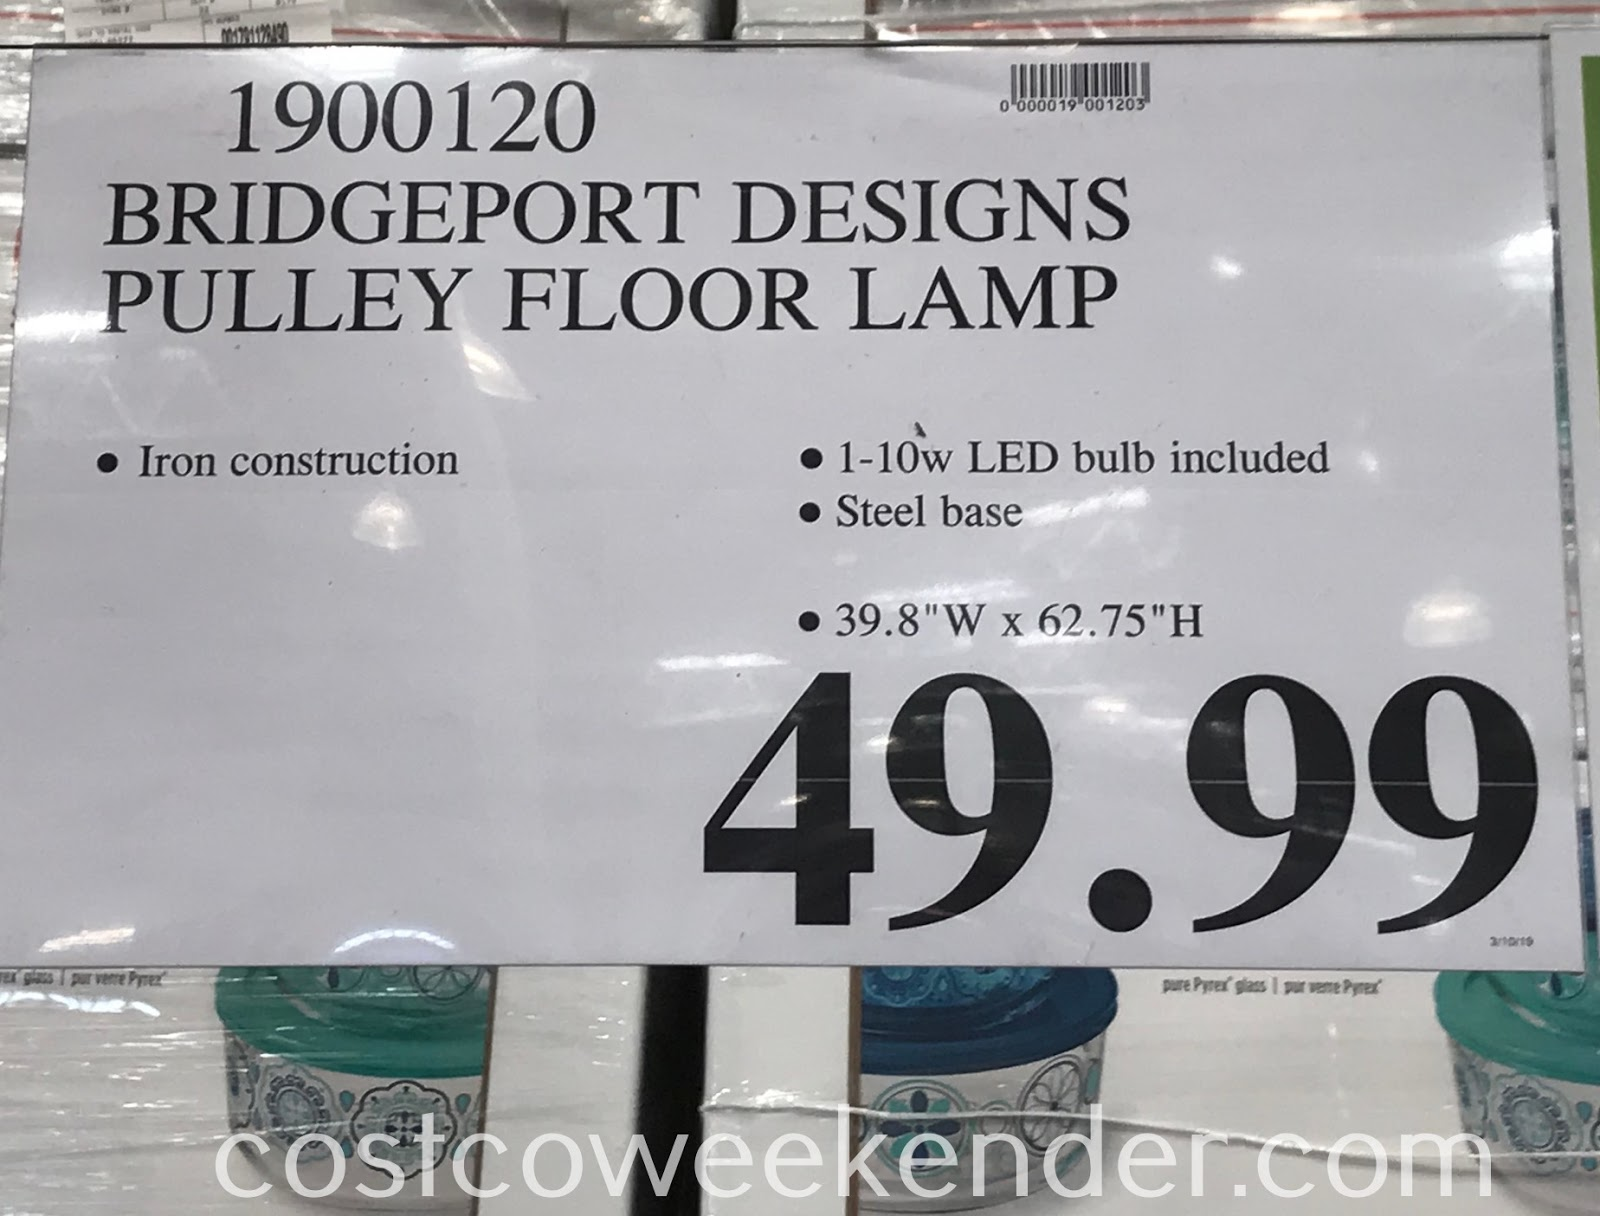 Deal for the Bridgeport Designs Pulley Floor Lamp at Costco